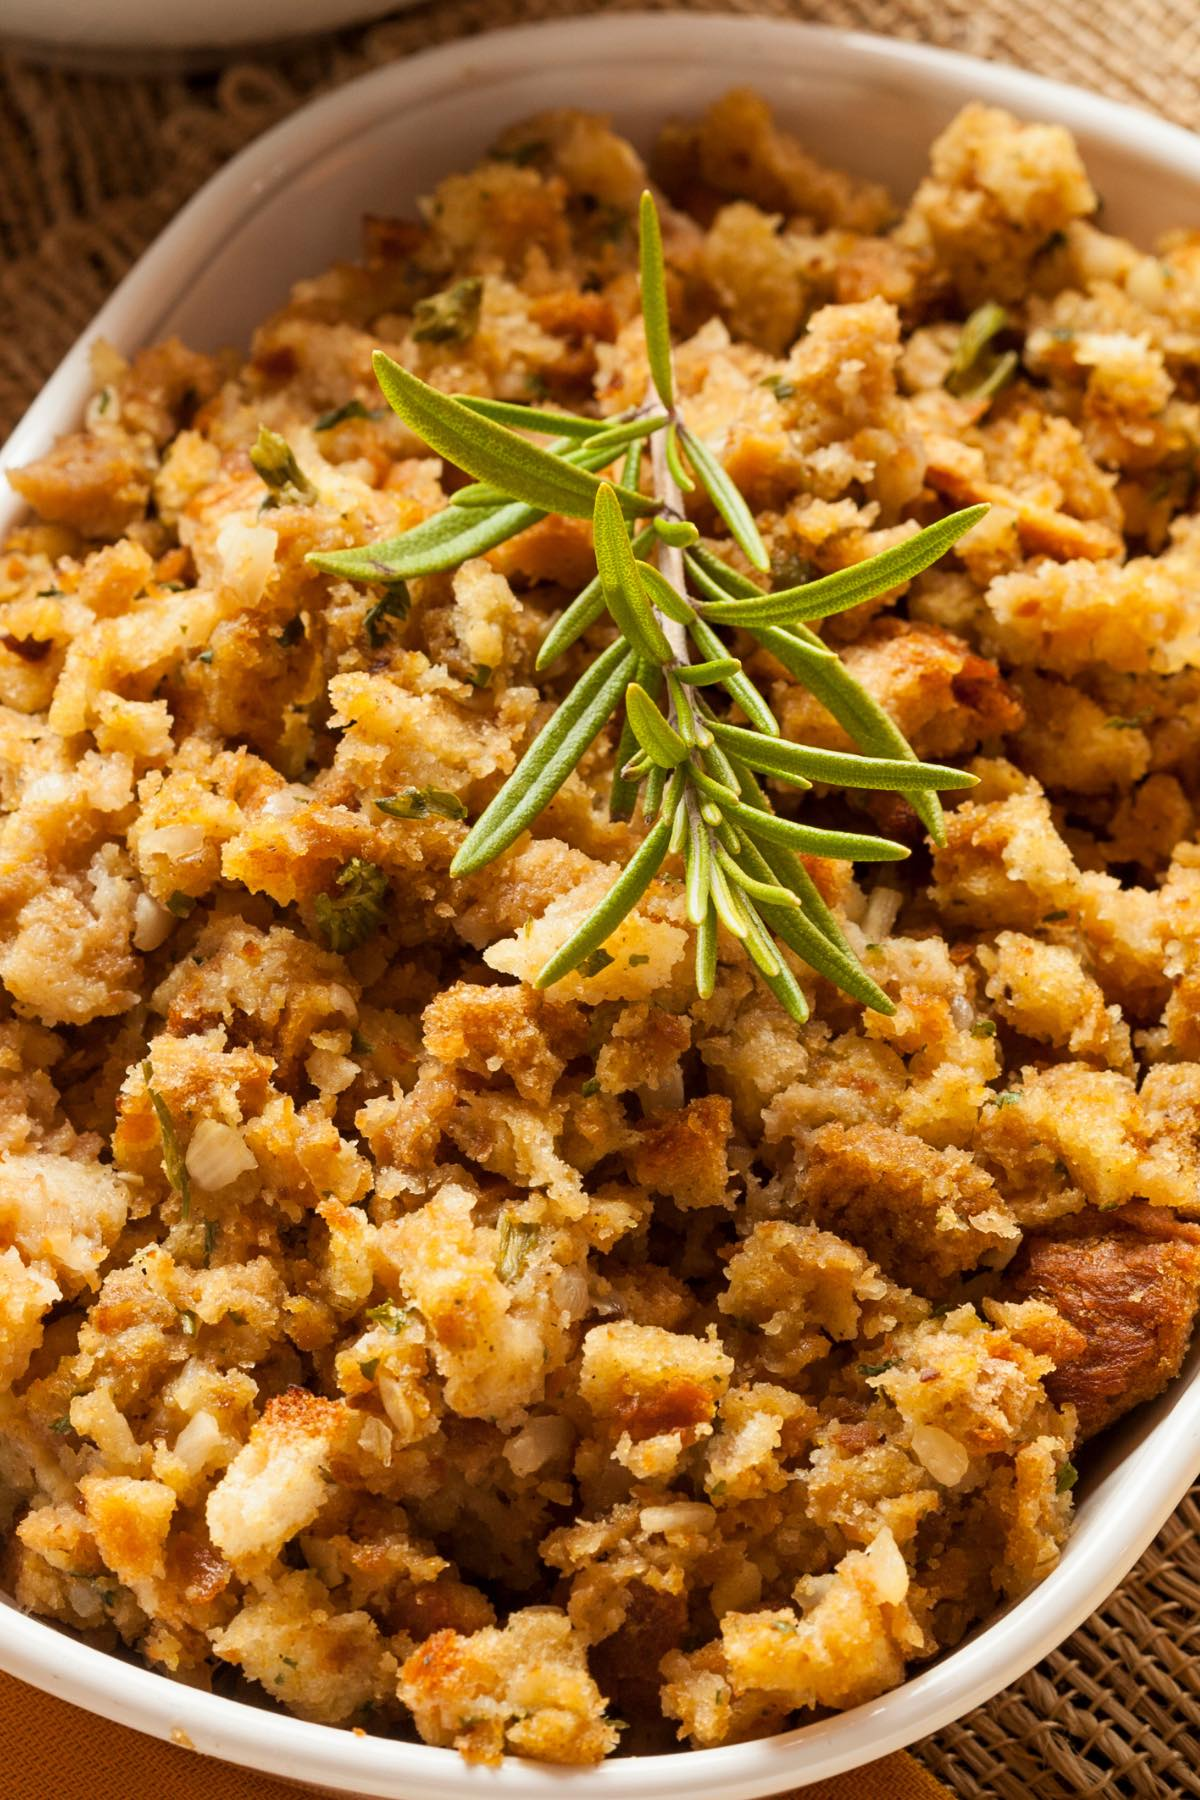 Stuffing is the Thanksgiving staple that can be enjoyed all throughout the year! You'll hardly find a side dish more wholesome and comforting than buttery, perfectly seasoned stuffing. You can make it from scratch or use a box of stuffing. We've collected 10 Best Stove Top Stuffing Recipes that are easy to make at home.